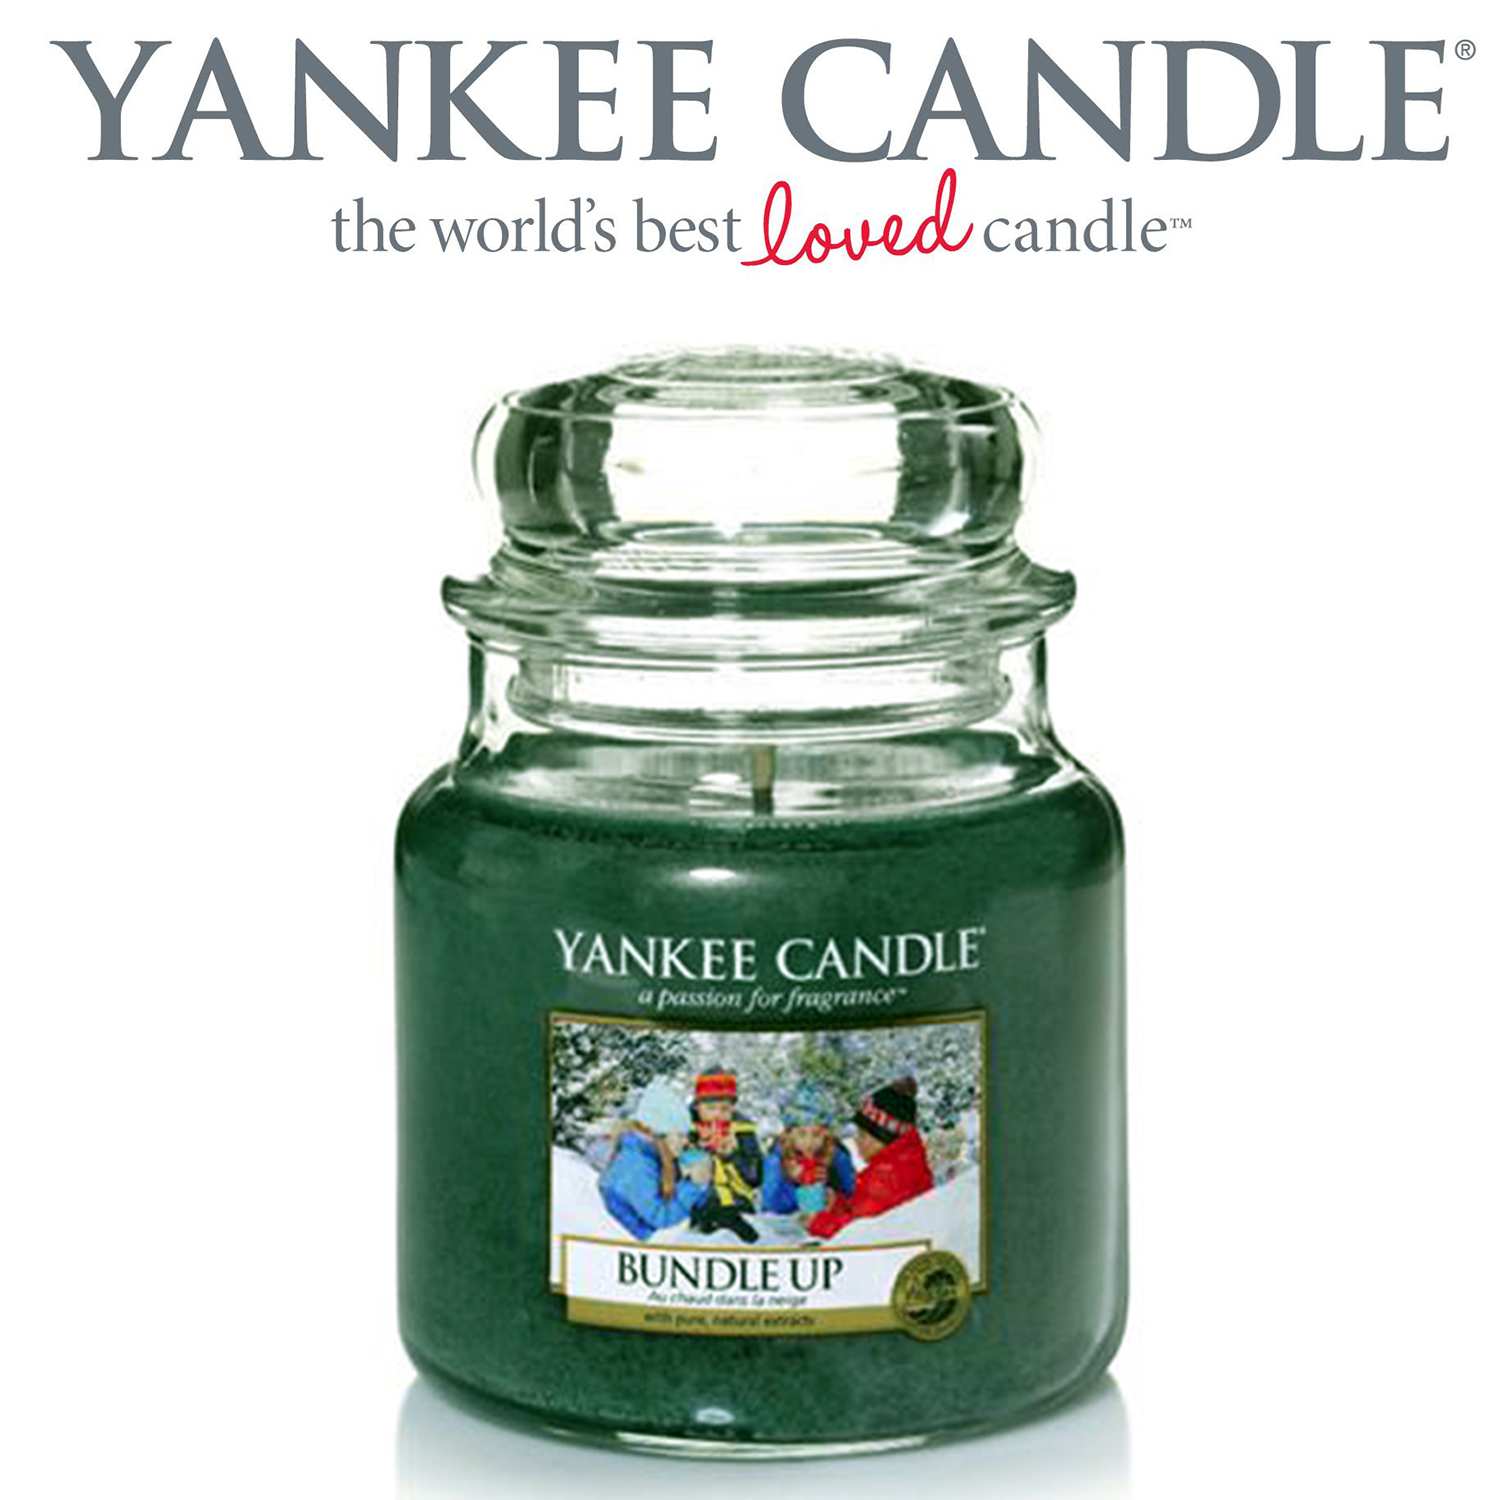 Yankee Candle Bundle Up Winter Scented 104g Glass Jar 40 Hour Burn Time Scents